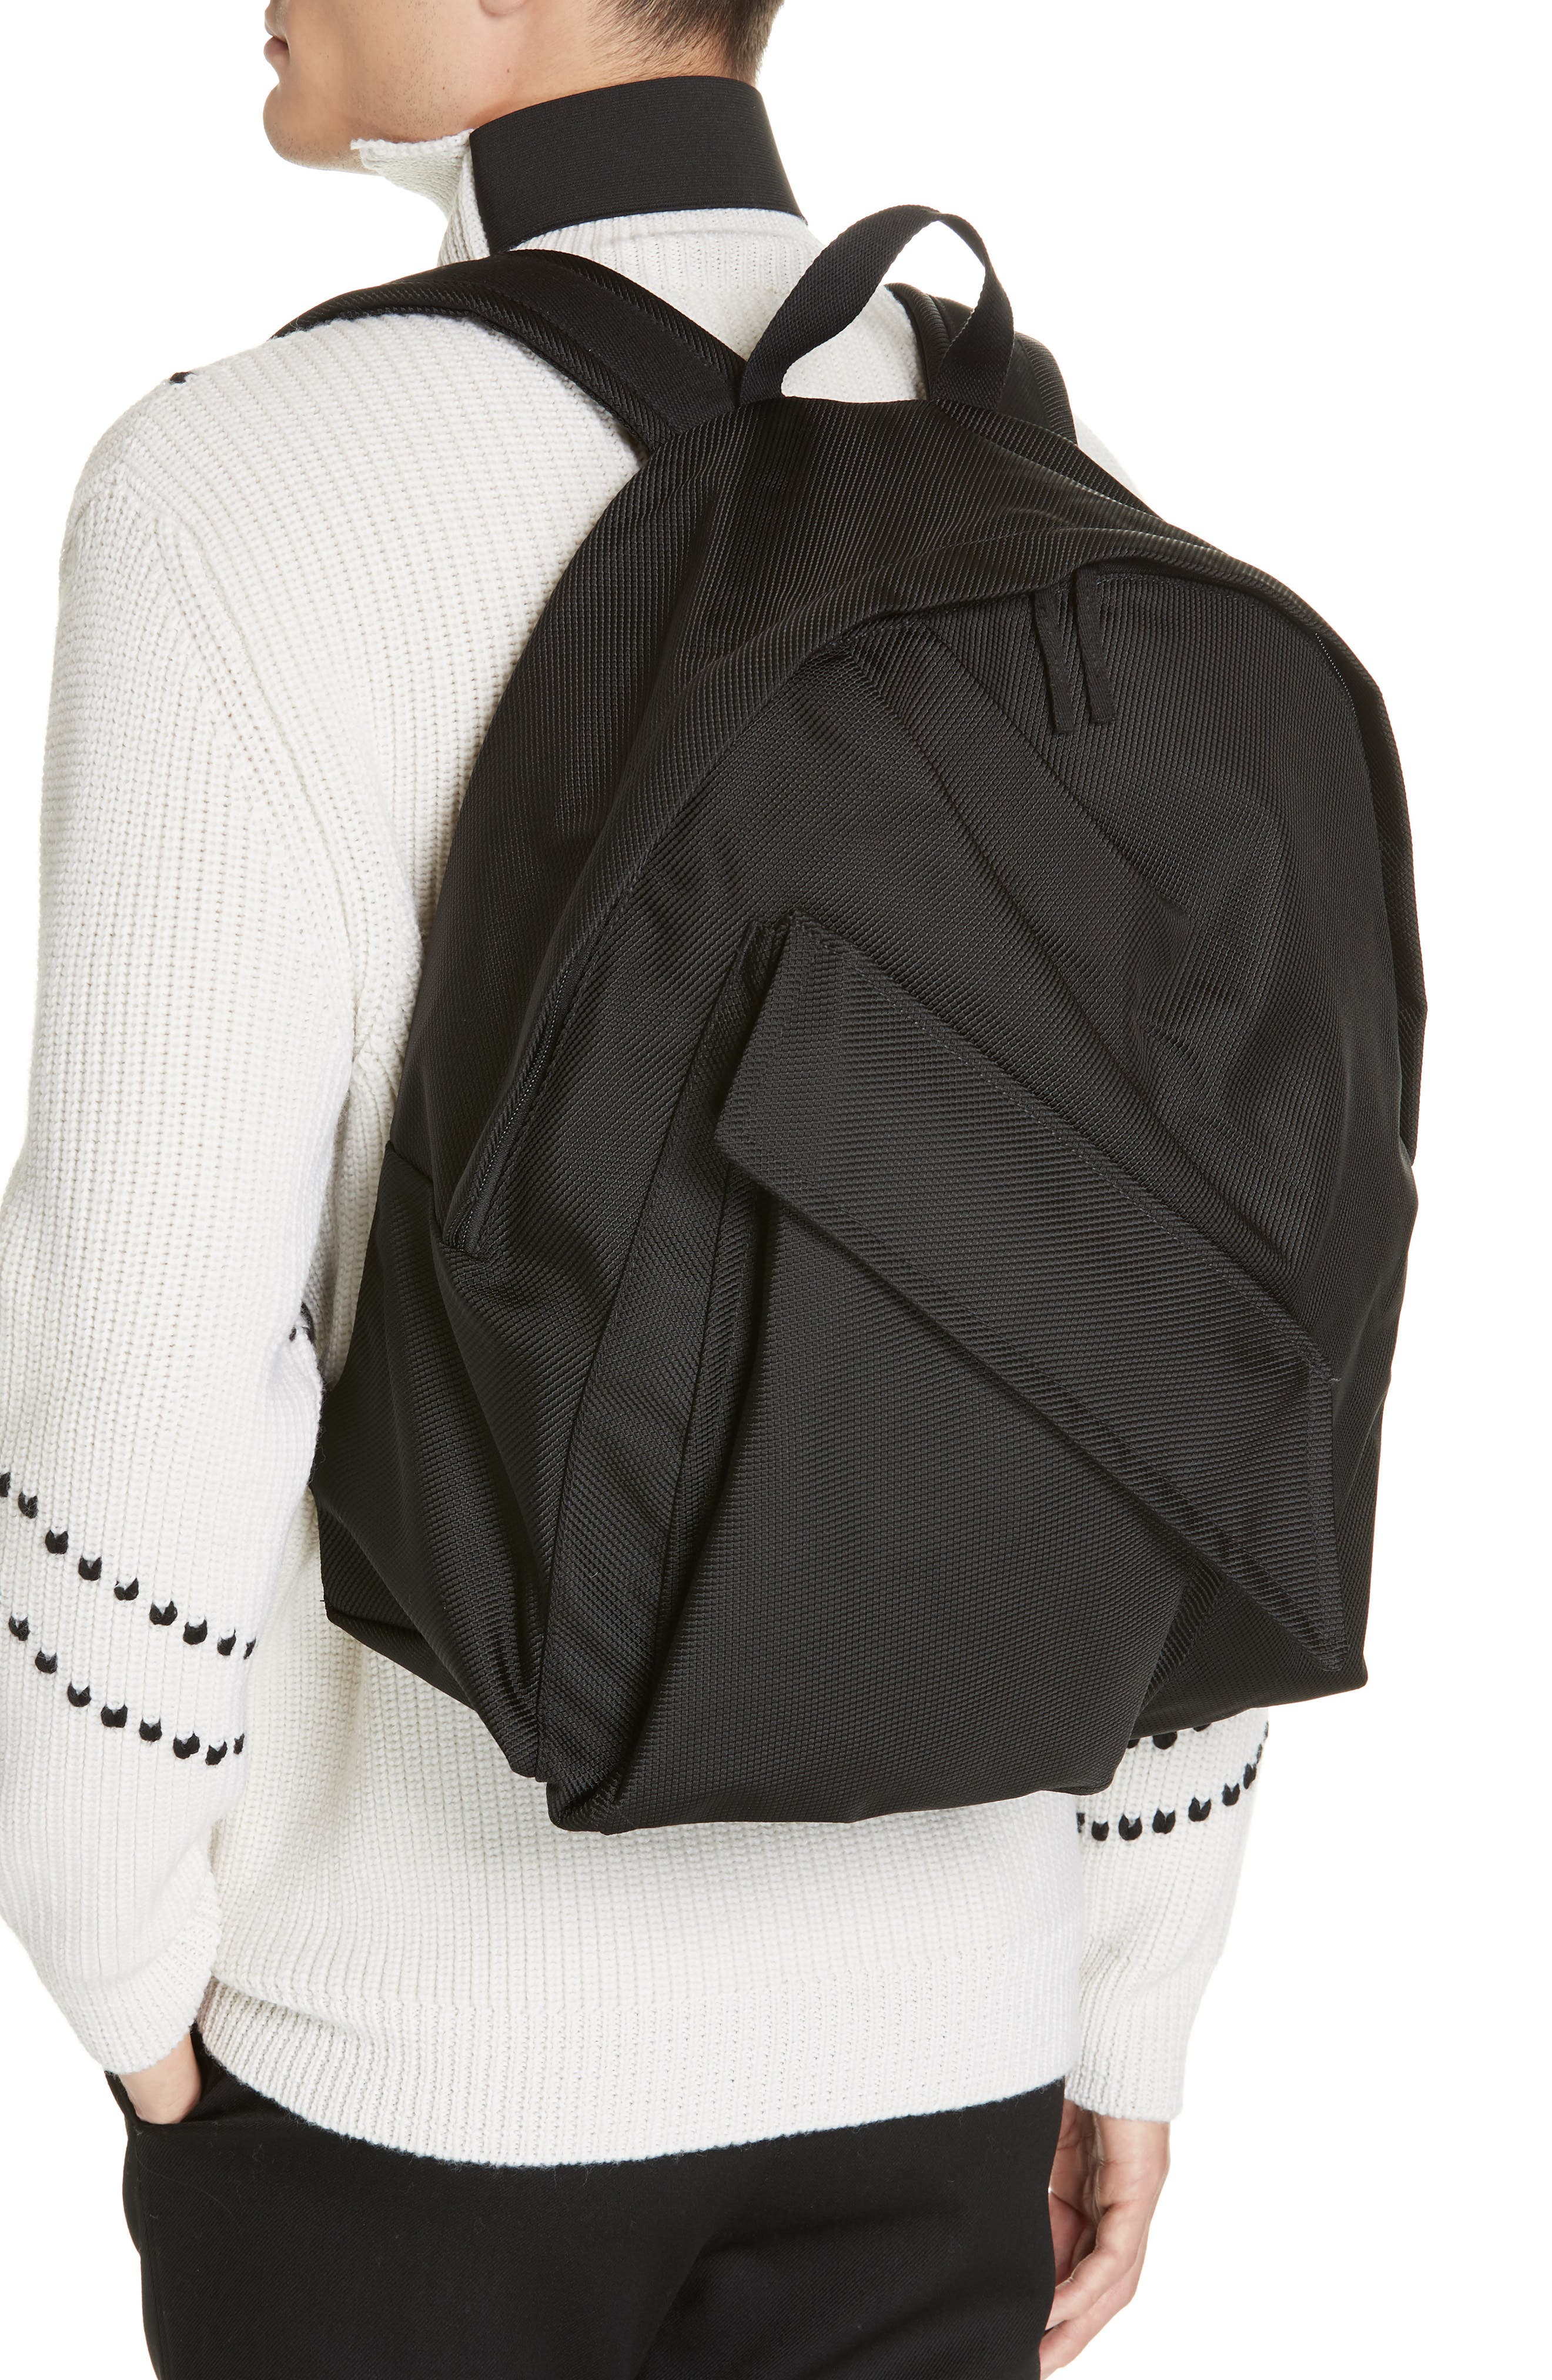 Eastpak x Raf Simons Classic Structured Backpack,                             Alternate thumbnail 2, color,                             001